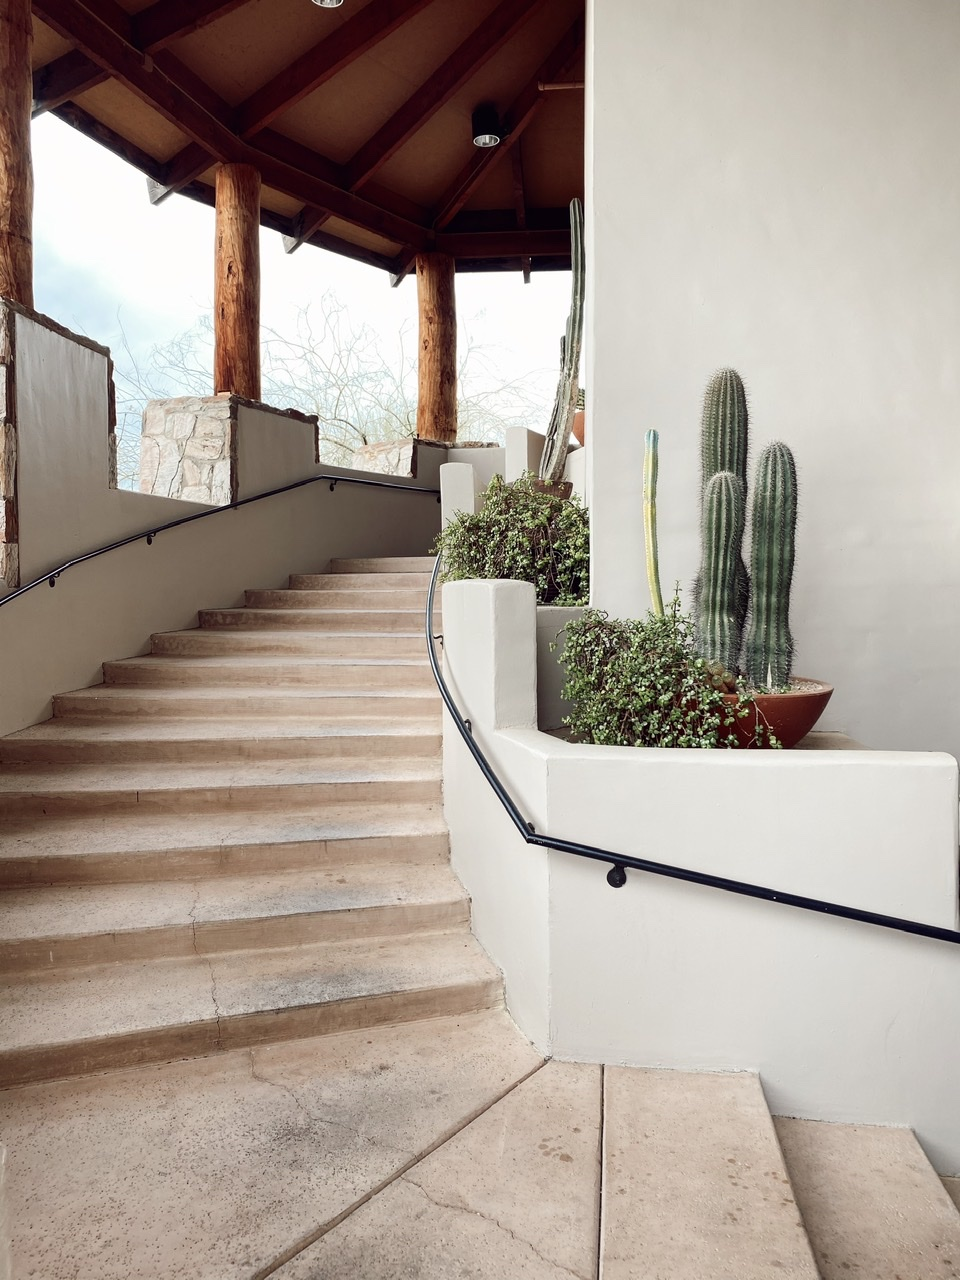 Simple and elegant property design that can be felt and appreciated all over the Civana Resort campus. Walking from class to class you are surrounded by these beautiful and unique cactus and white-washed walls.